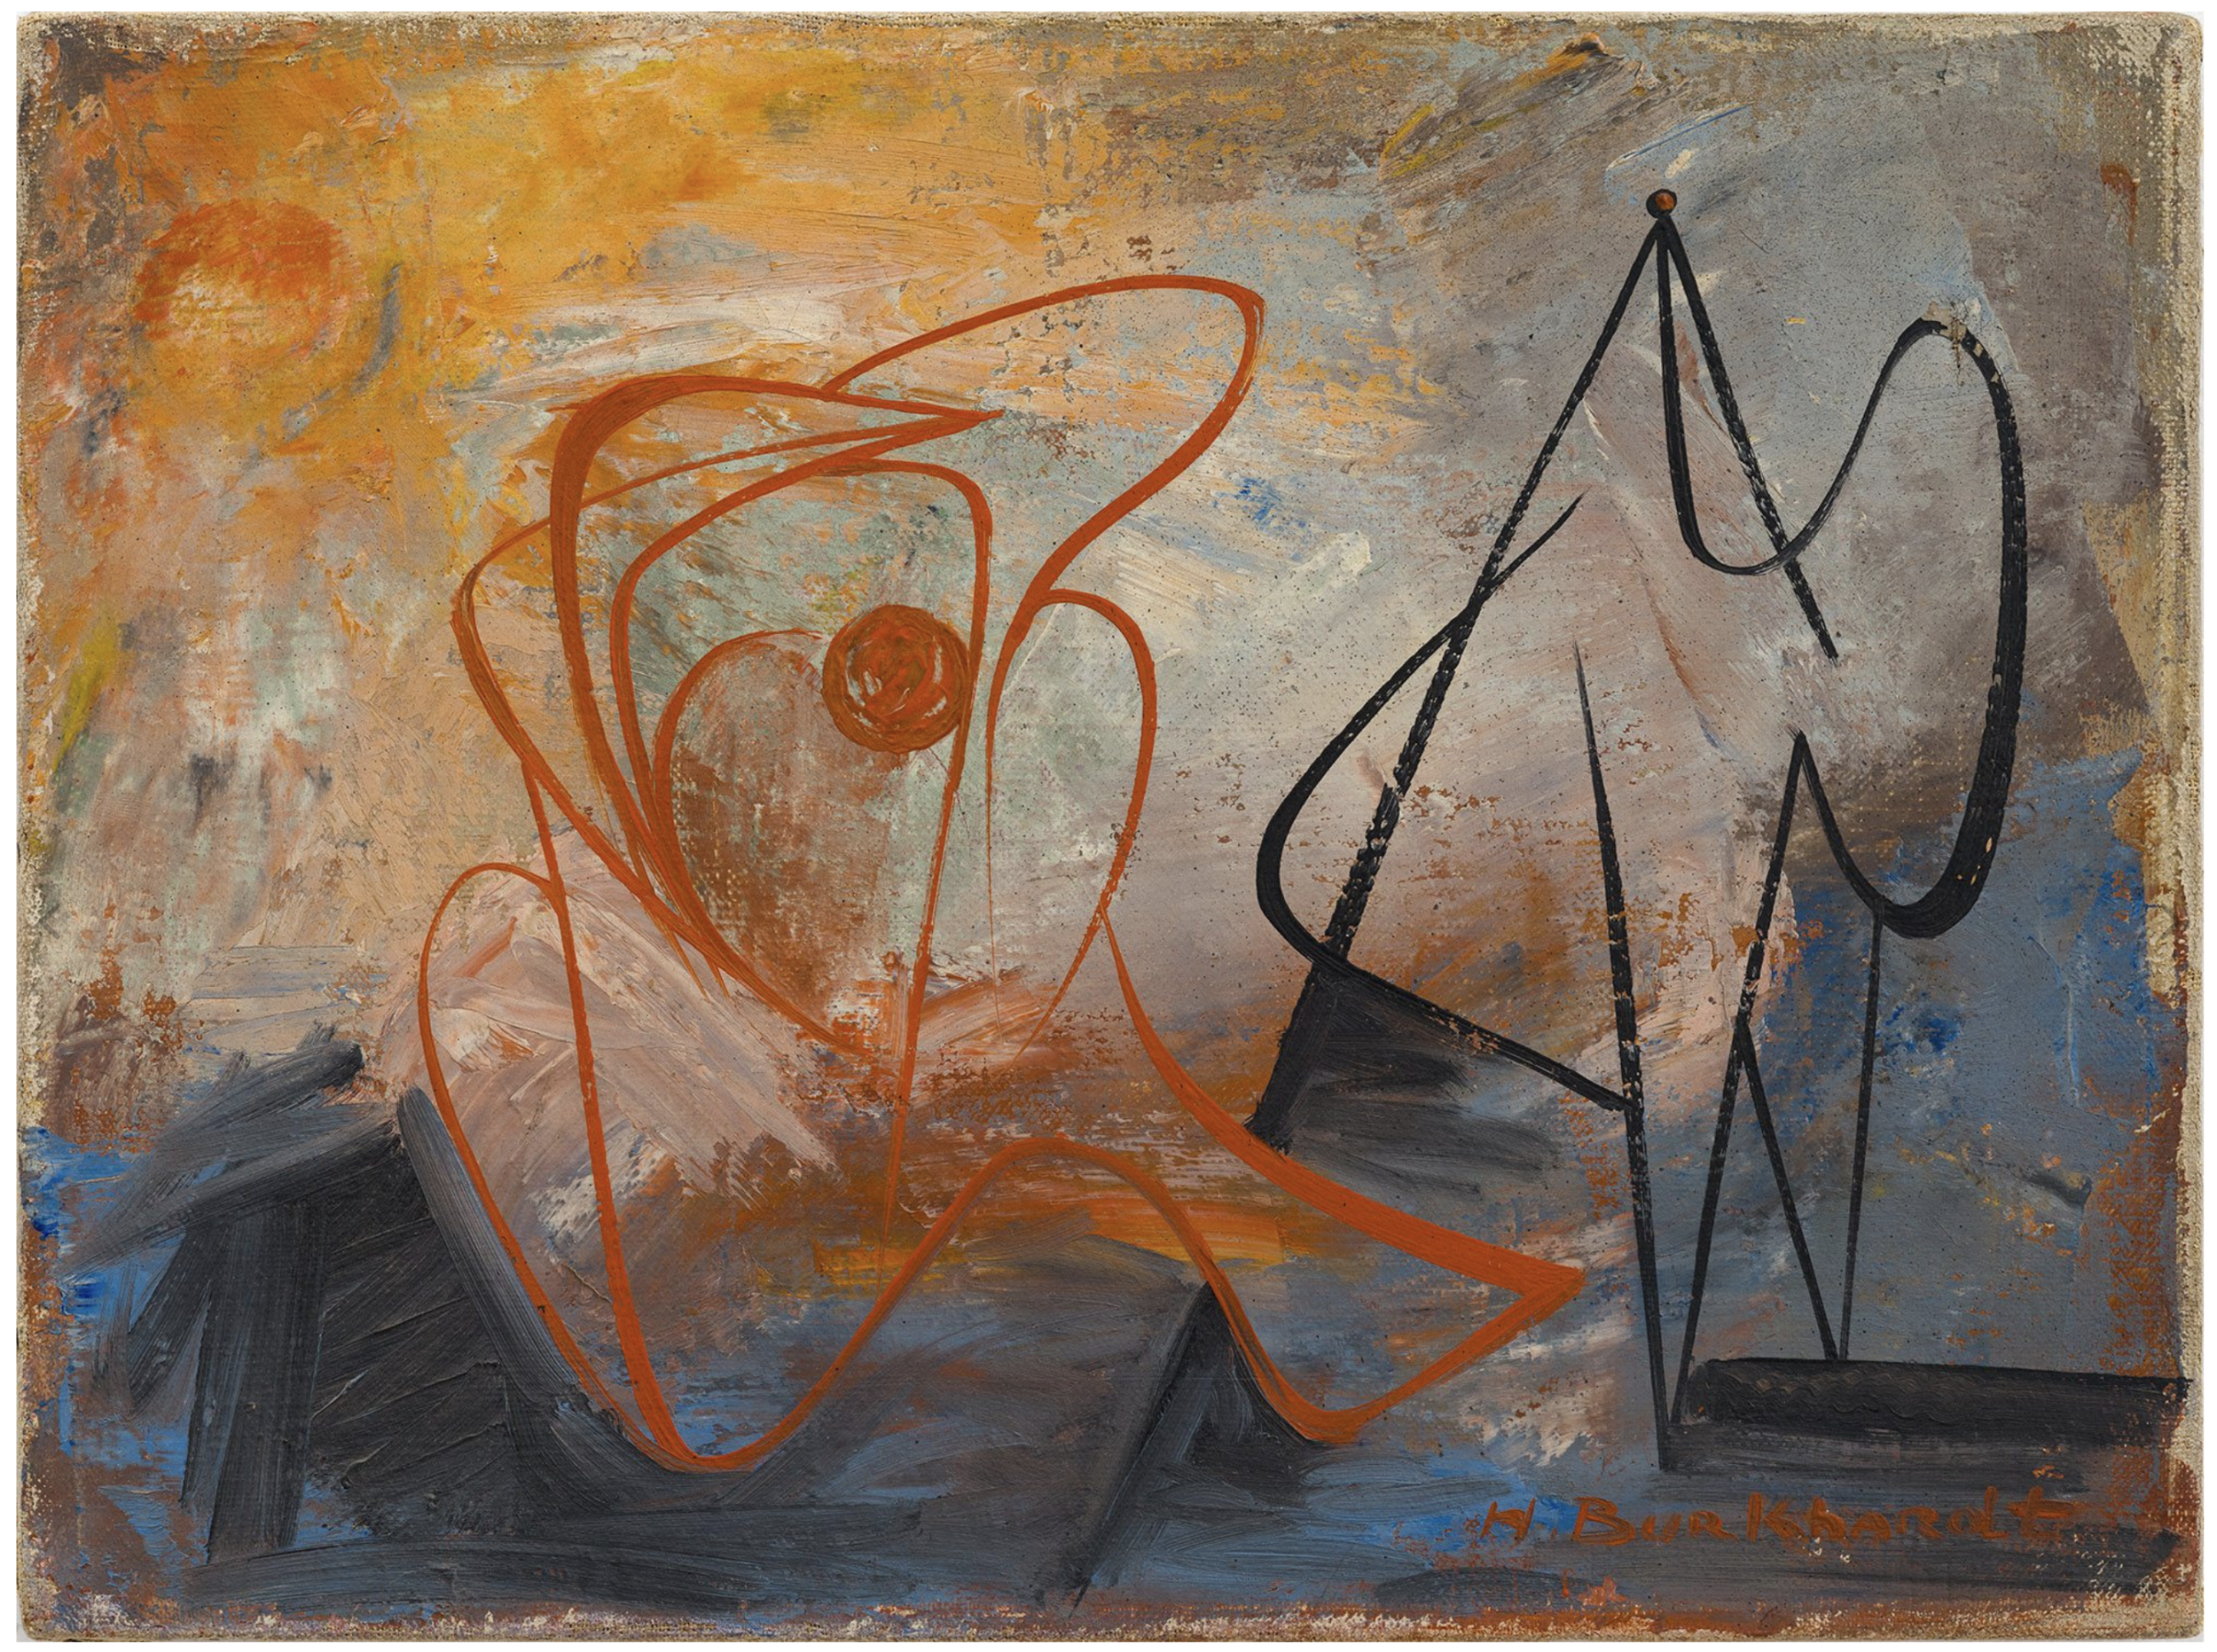 Untitled, 1940 (oil on canvas)